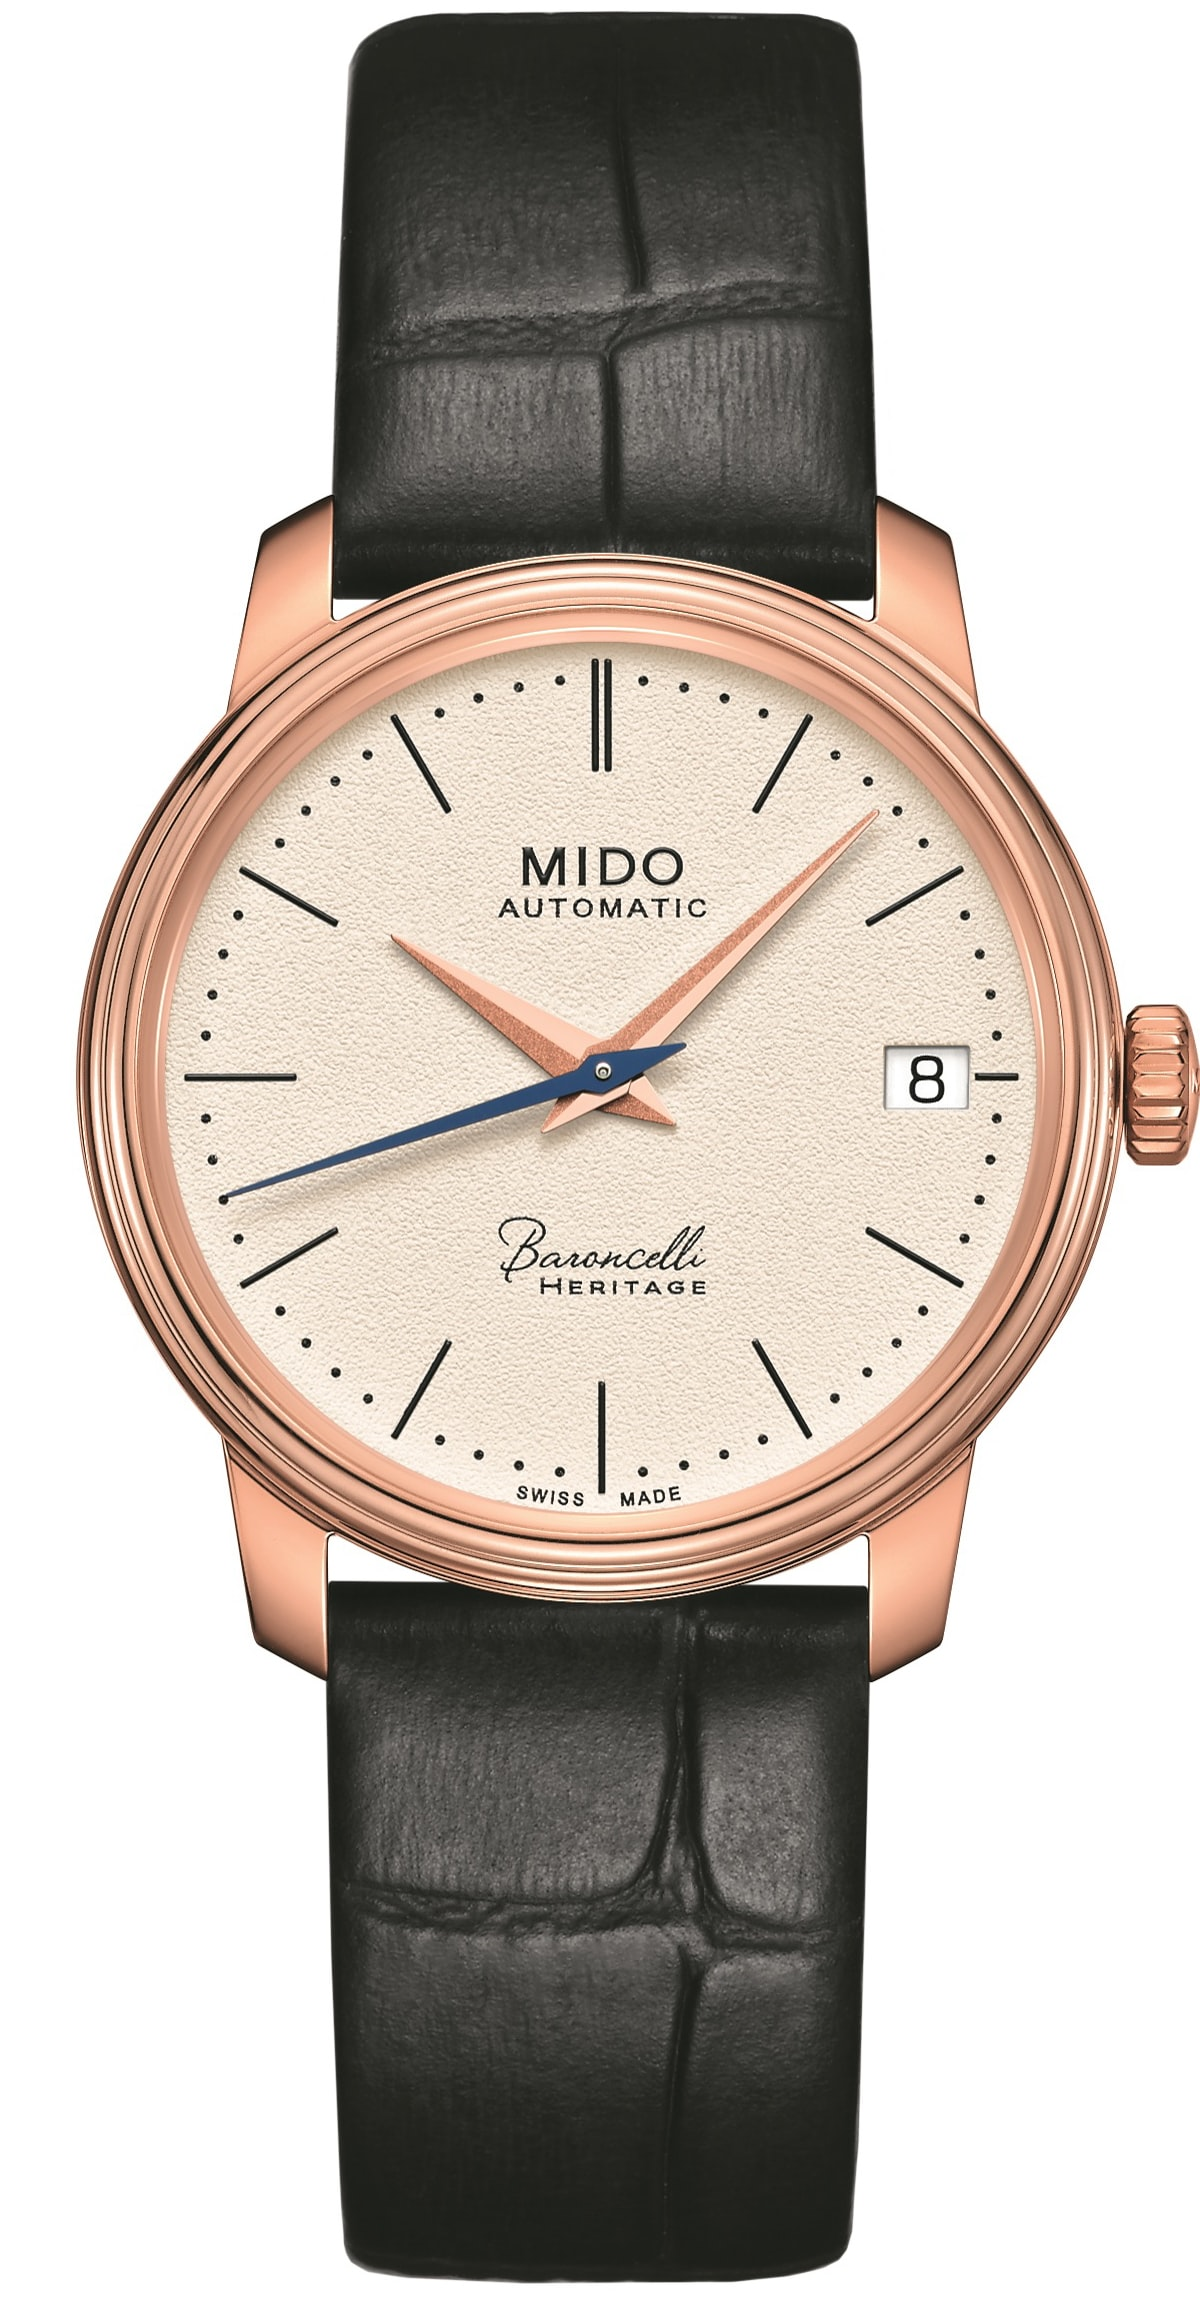 The Value Proposition: The Mido Baroncelli Heritage, A Great Looking Simple Watch At A Great Price The Value Proposition: The Mido Baroncelli Heritage, A Great Looking Simple Watch At A Great Price crop 1